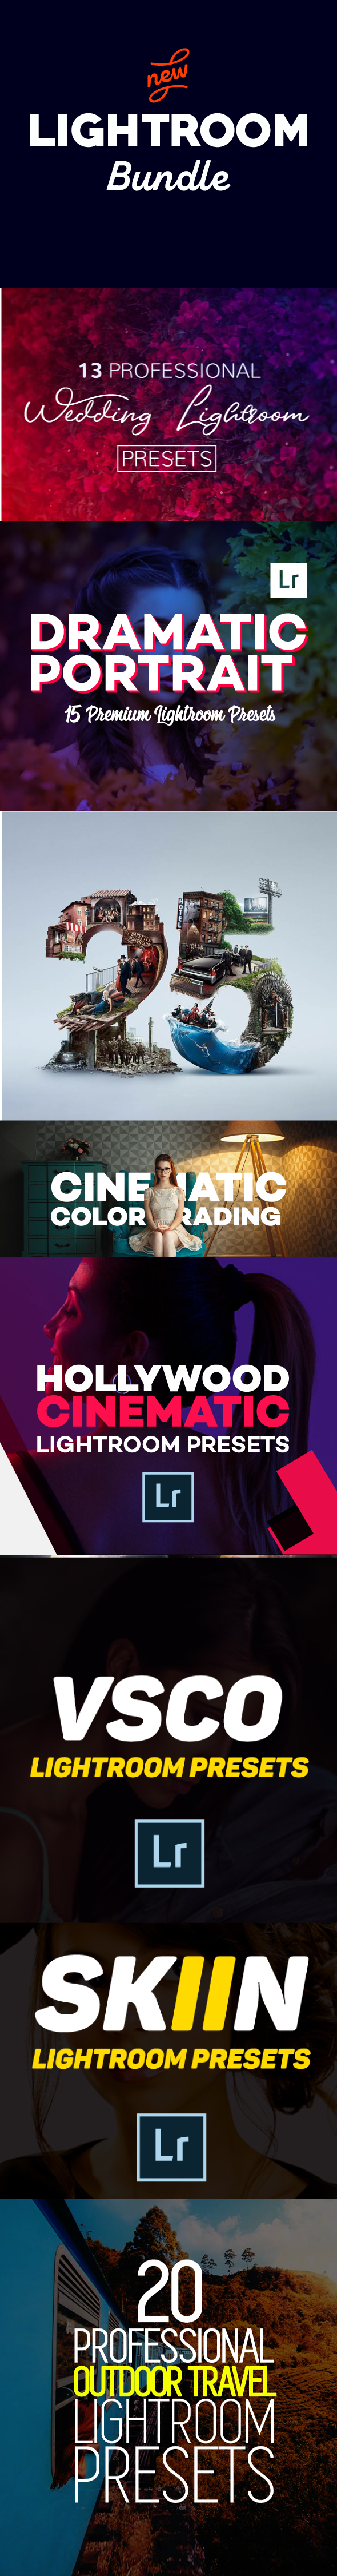 130+ Lightroom Presets Bundle - Lightroom Presets Add-ons